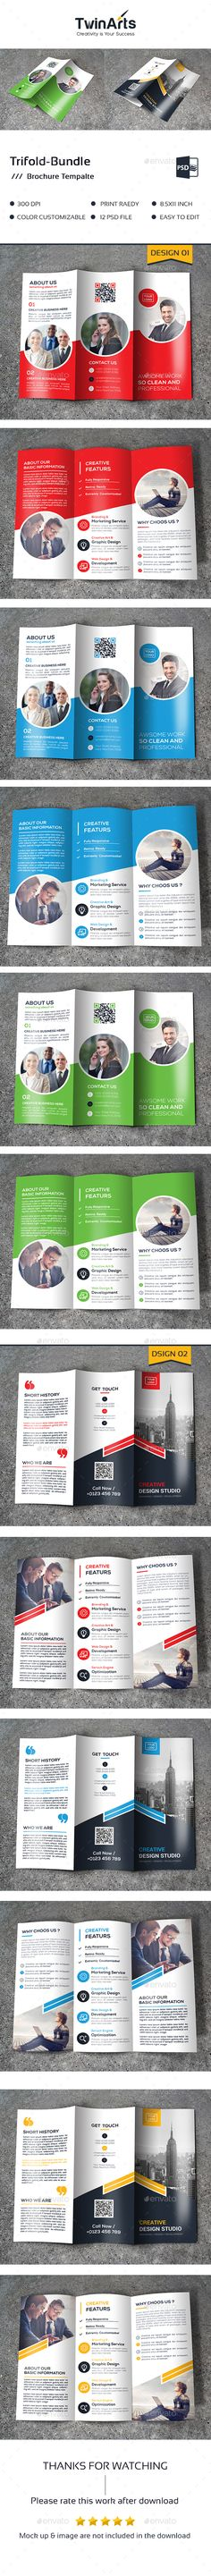 Tri-fold Brochure Template PSD Bundle. Download here: https://graphicriver.net/item/trifold-bundle_2-in-1/17175002?ref=ksioks